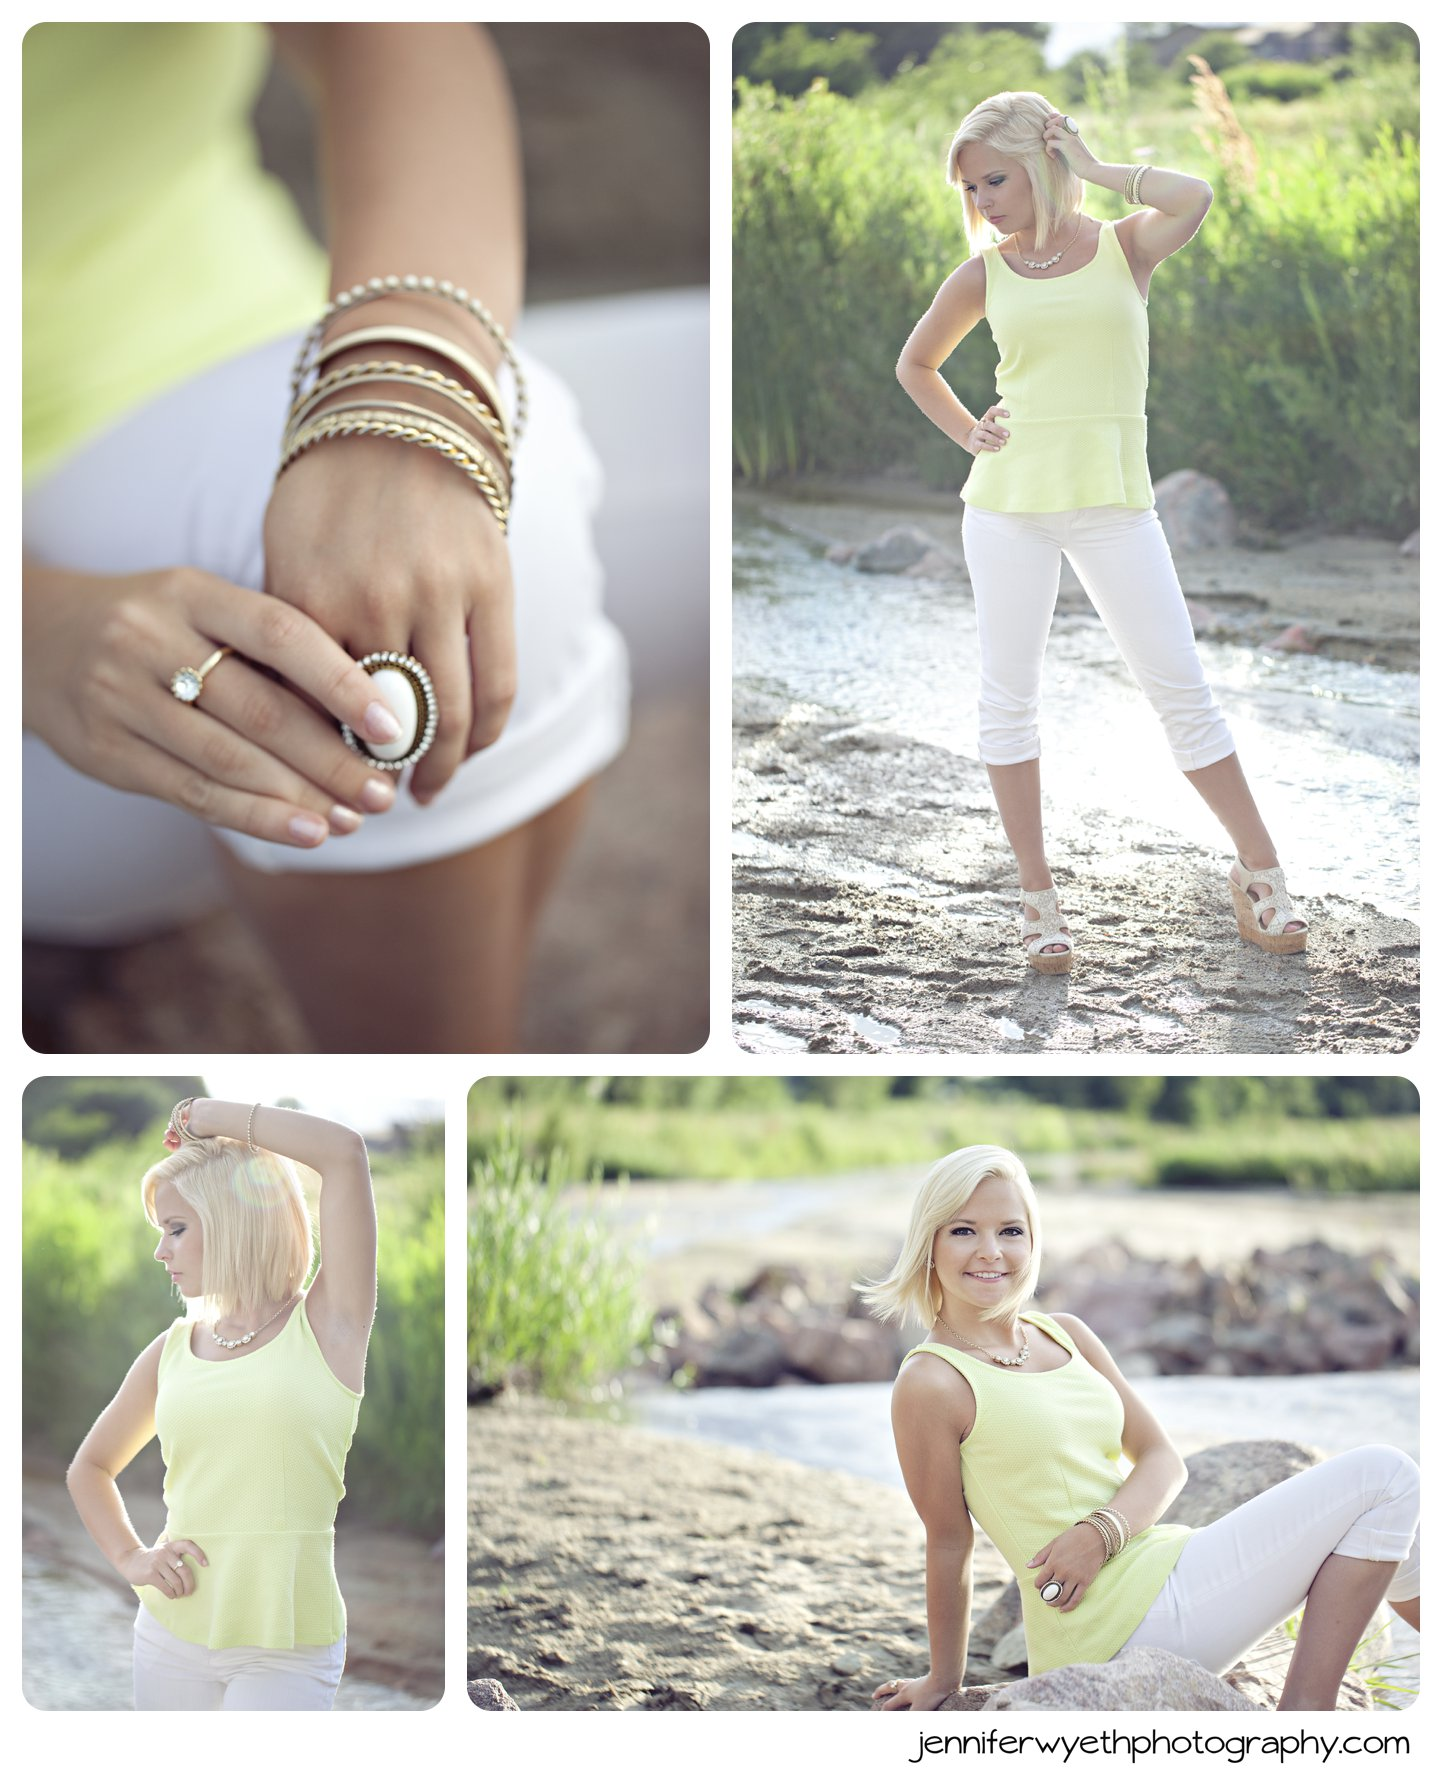 water green tank top and accessories completes pictures of beautiful teen girl